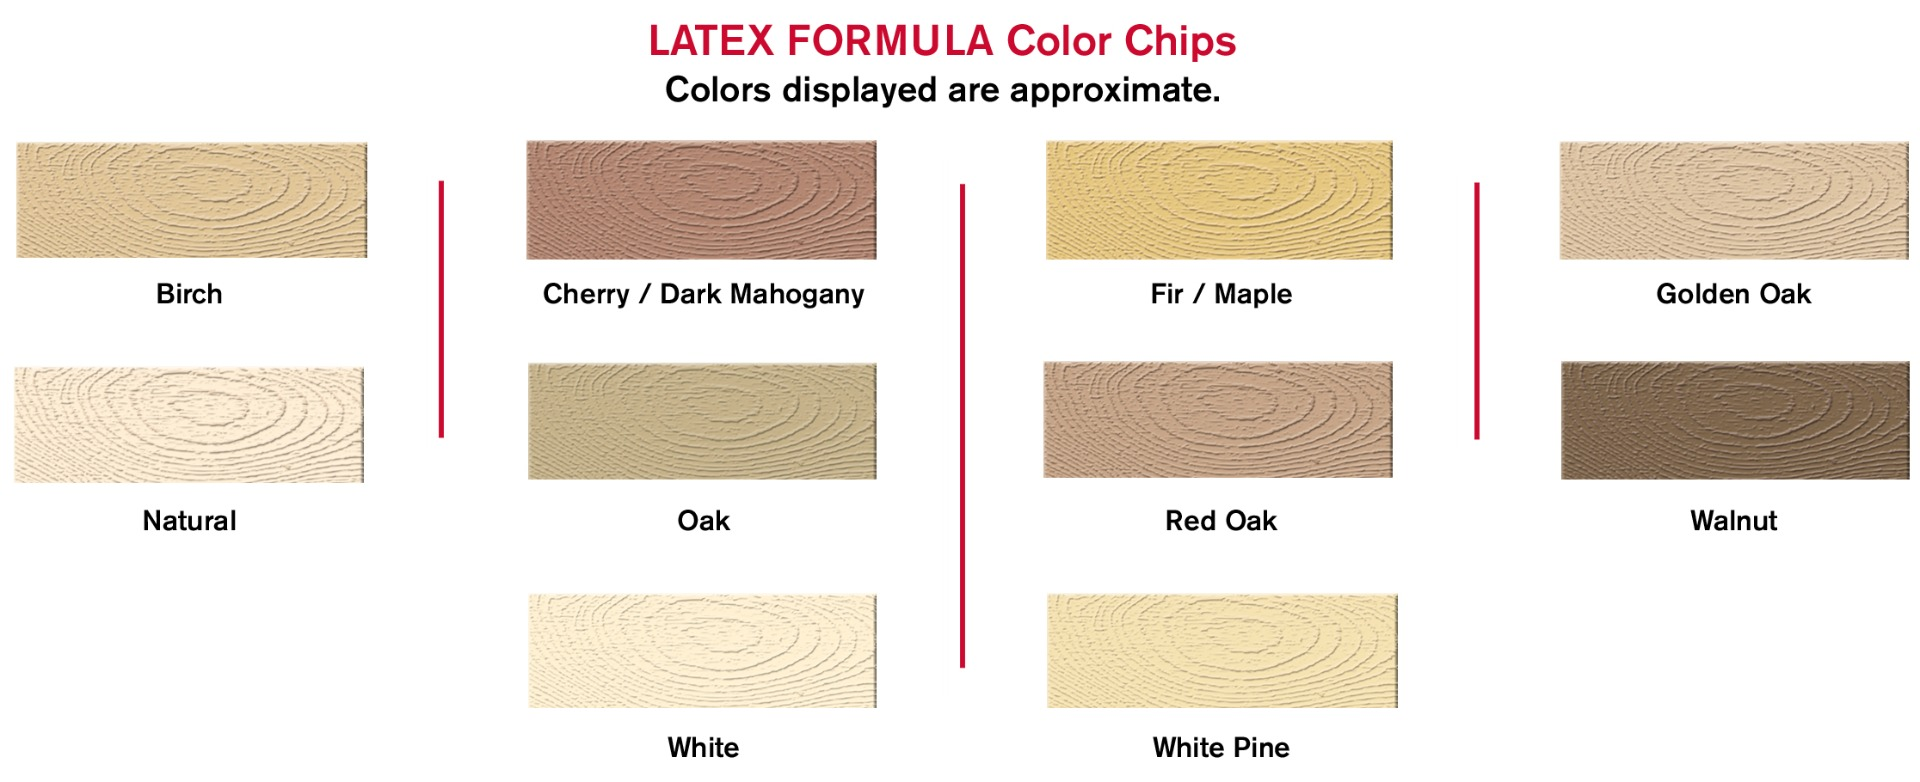 Famowood Latex Wood Filler Famowood Products In The